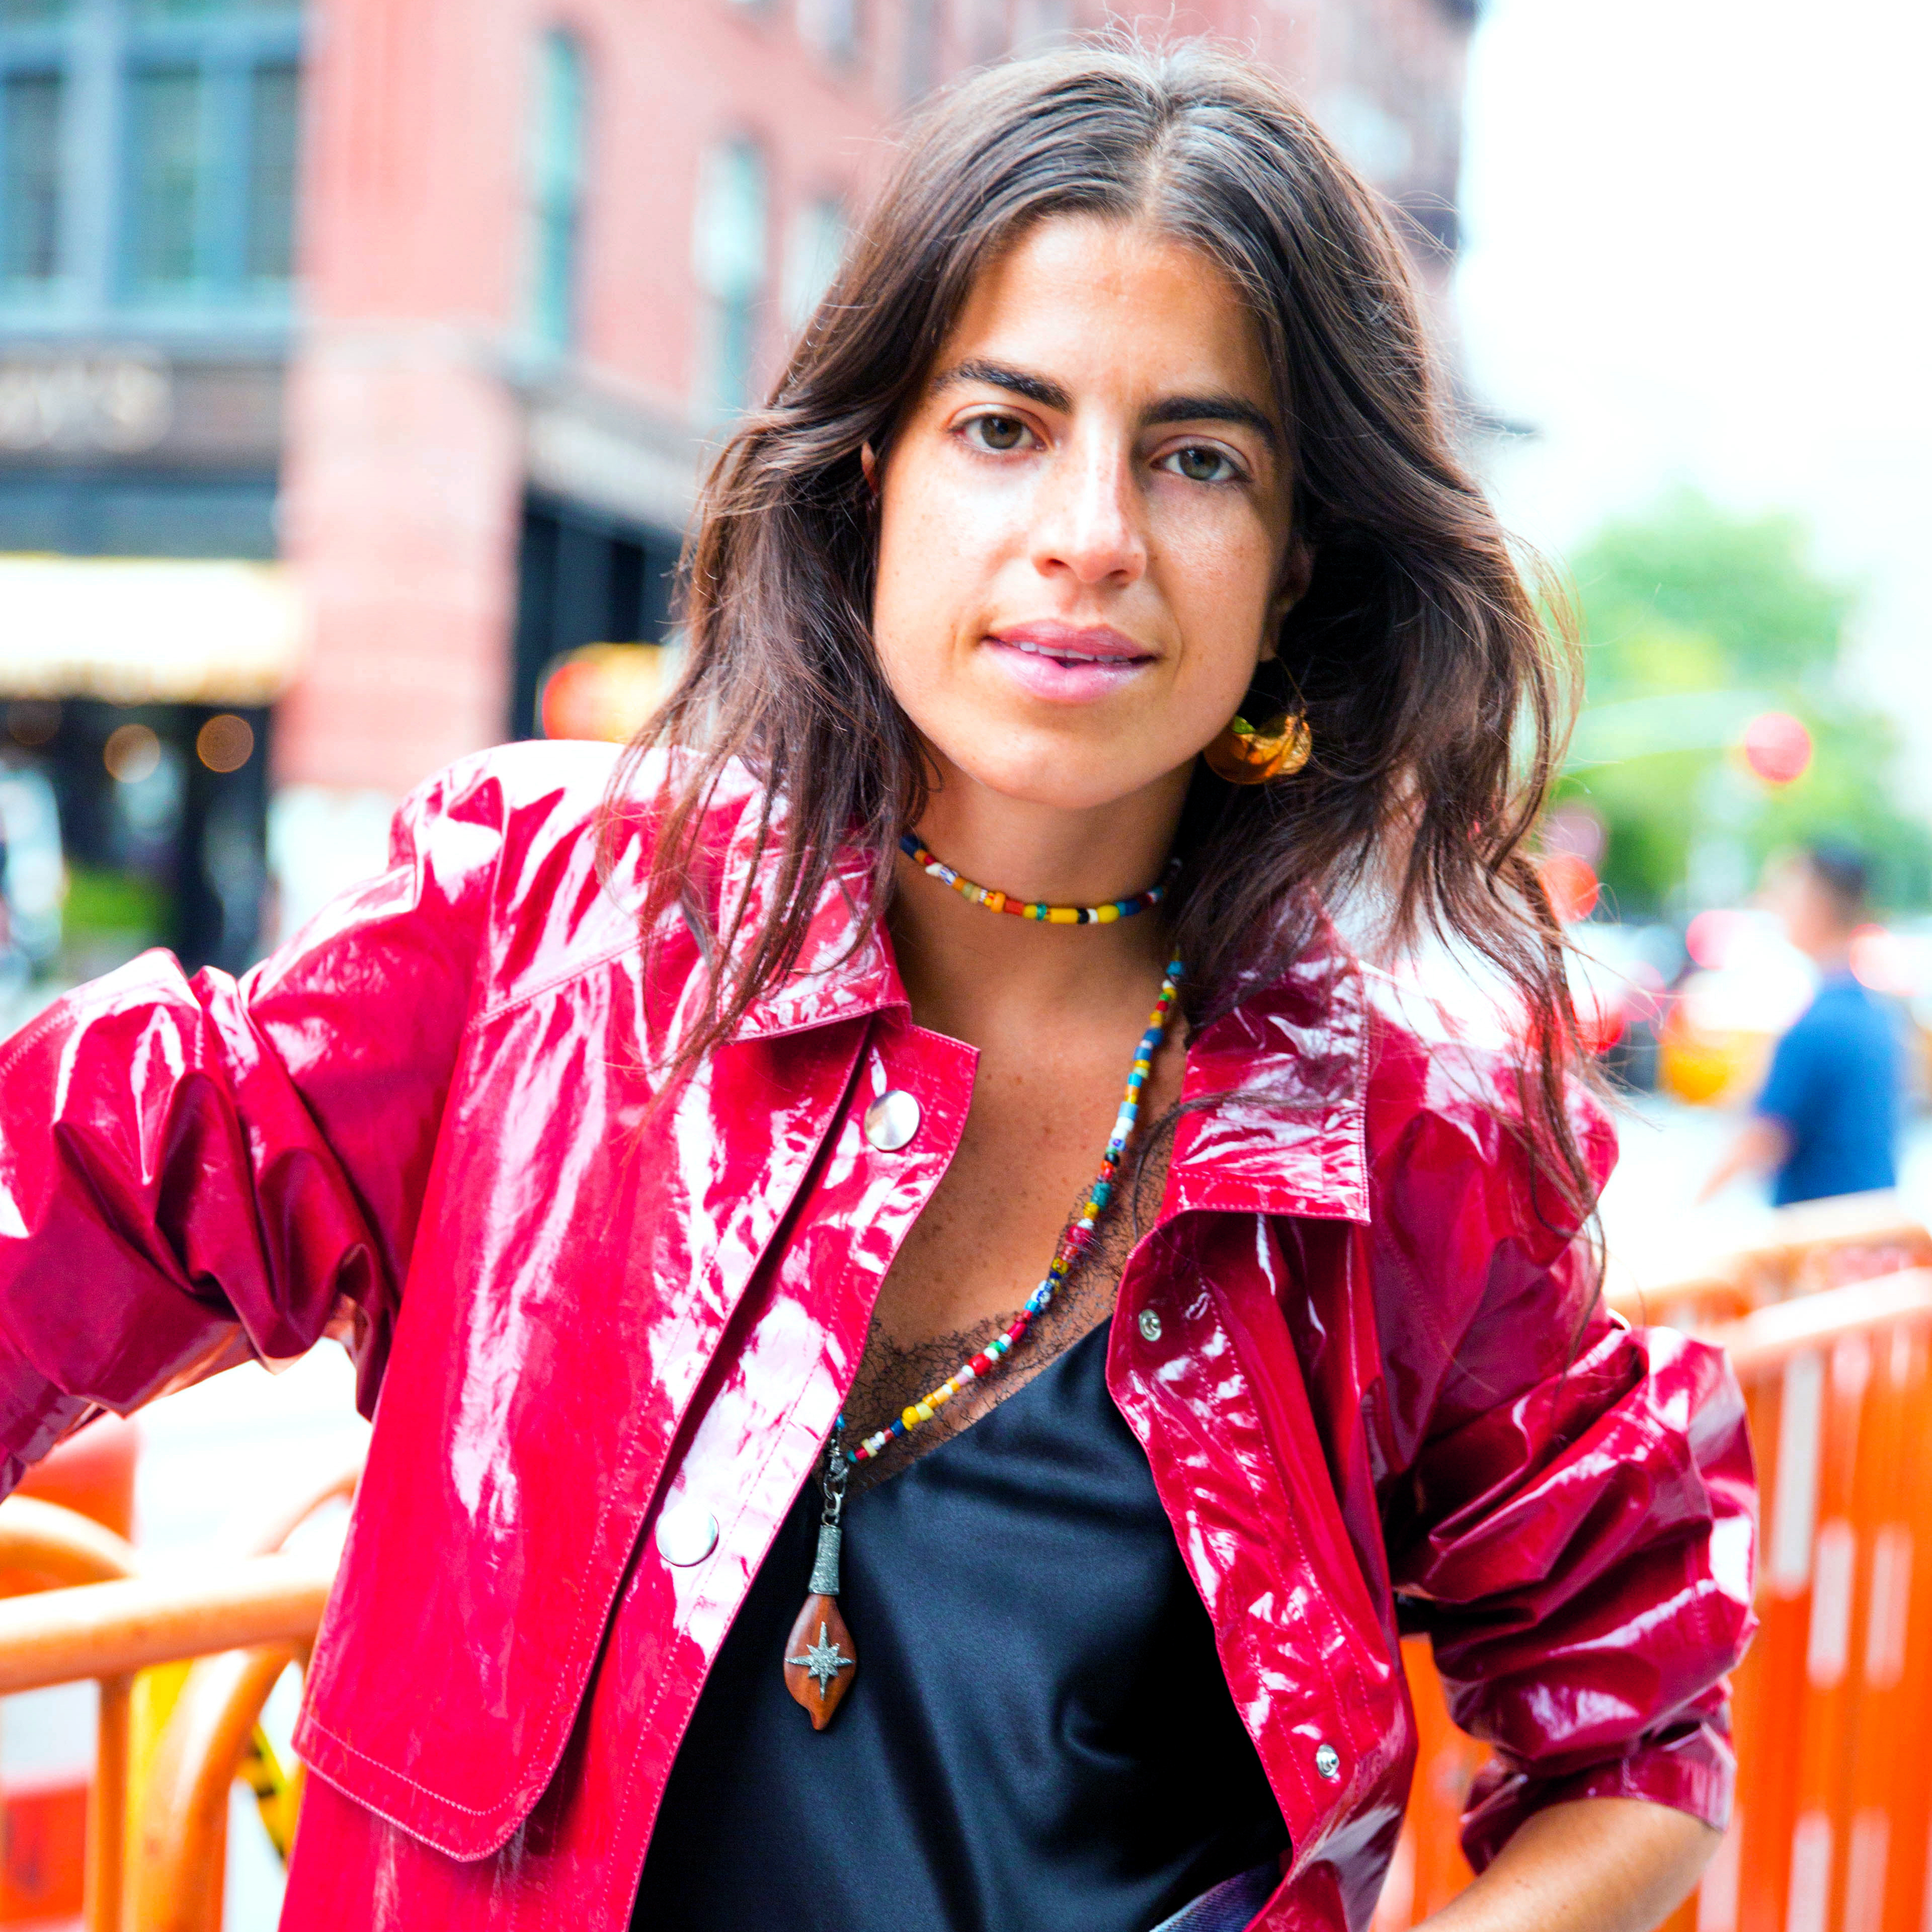 How To Dress For Yourself By Leandra Medine | PORTER